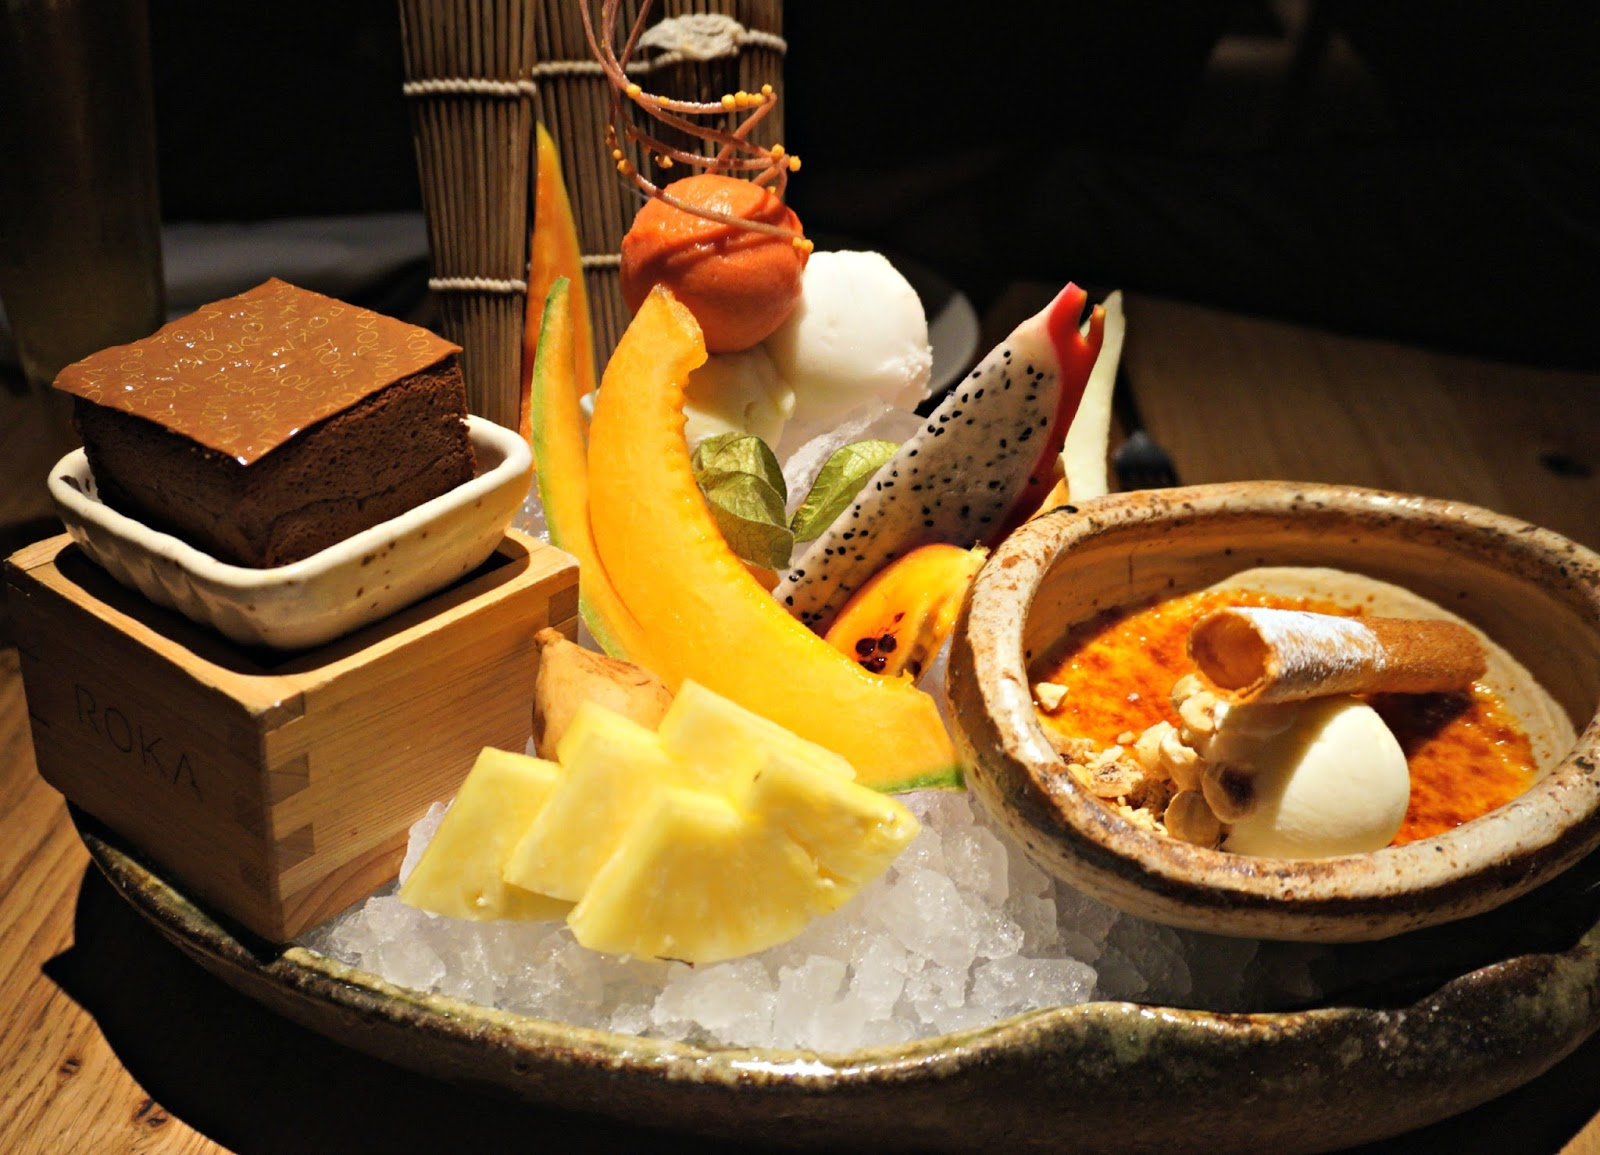 dessert platter with fruit and chocolate